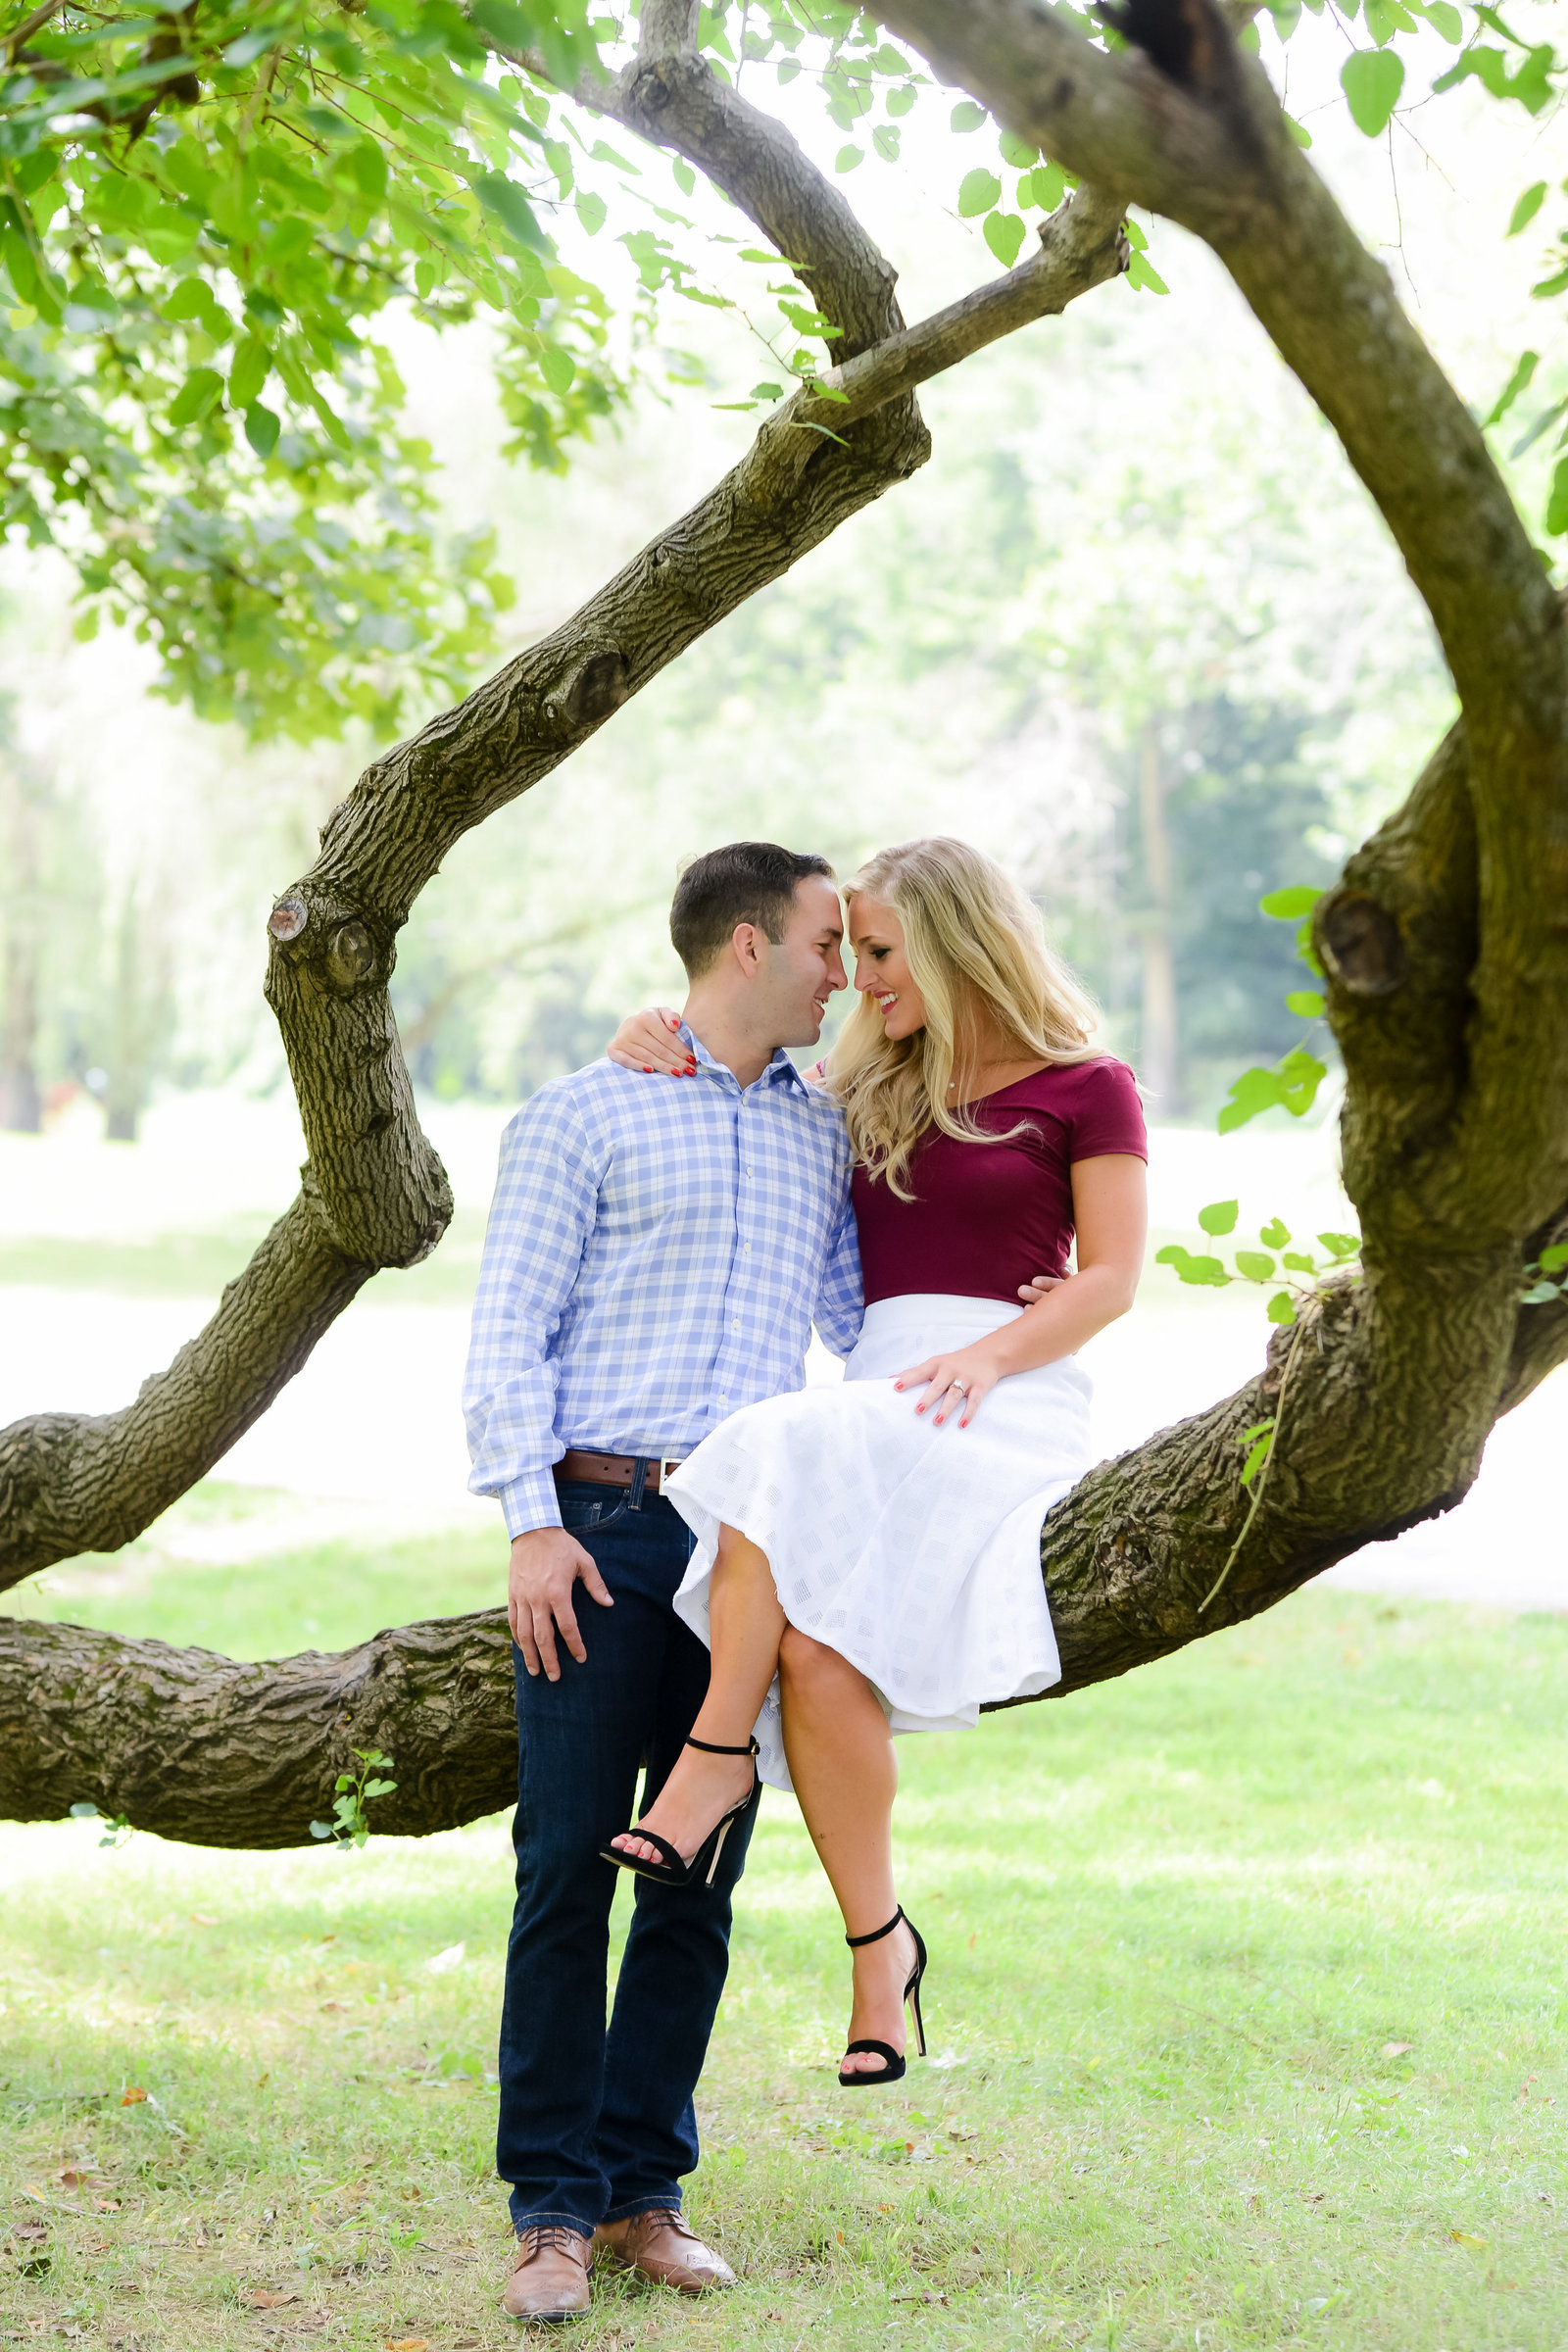 Indianapolis Engagement Photo by Sara Ackermann